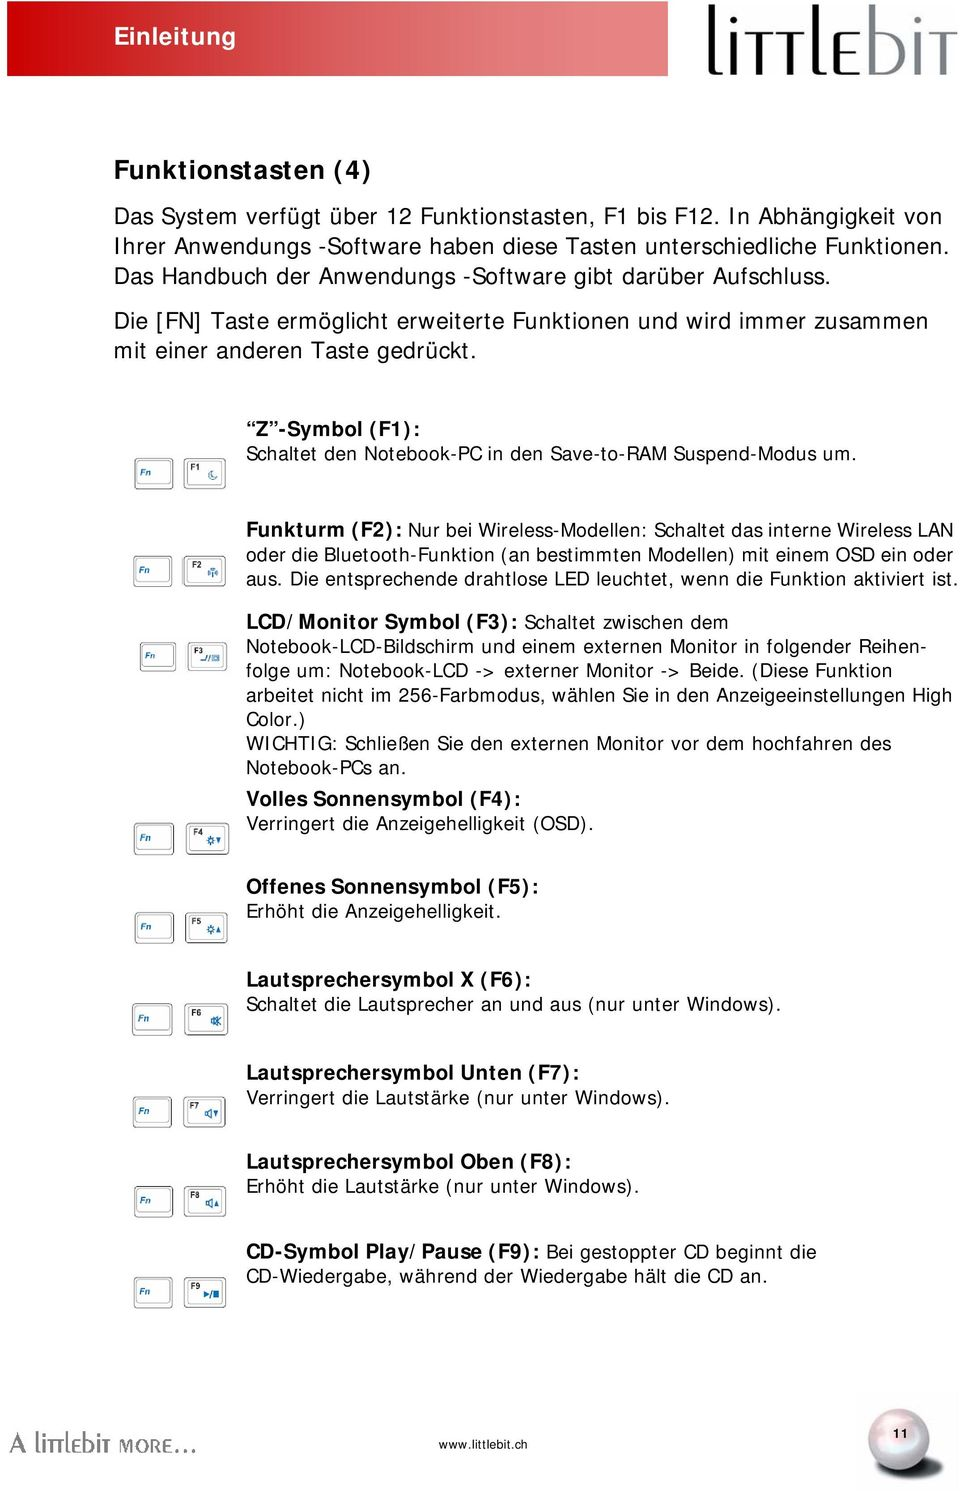 Z -Symbol (F1): Schaltet den Notebook-PC in den Save-to-RAM Suspend-Modus um.